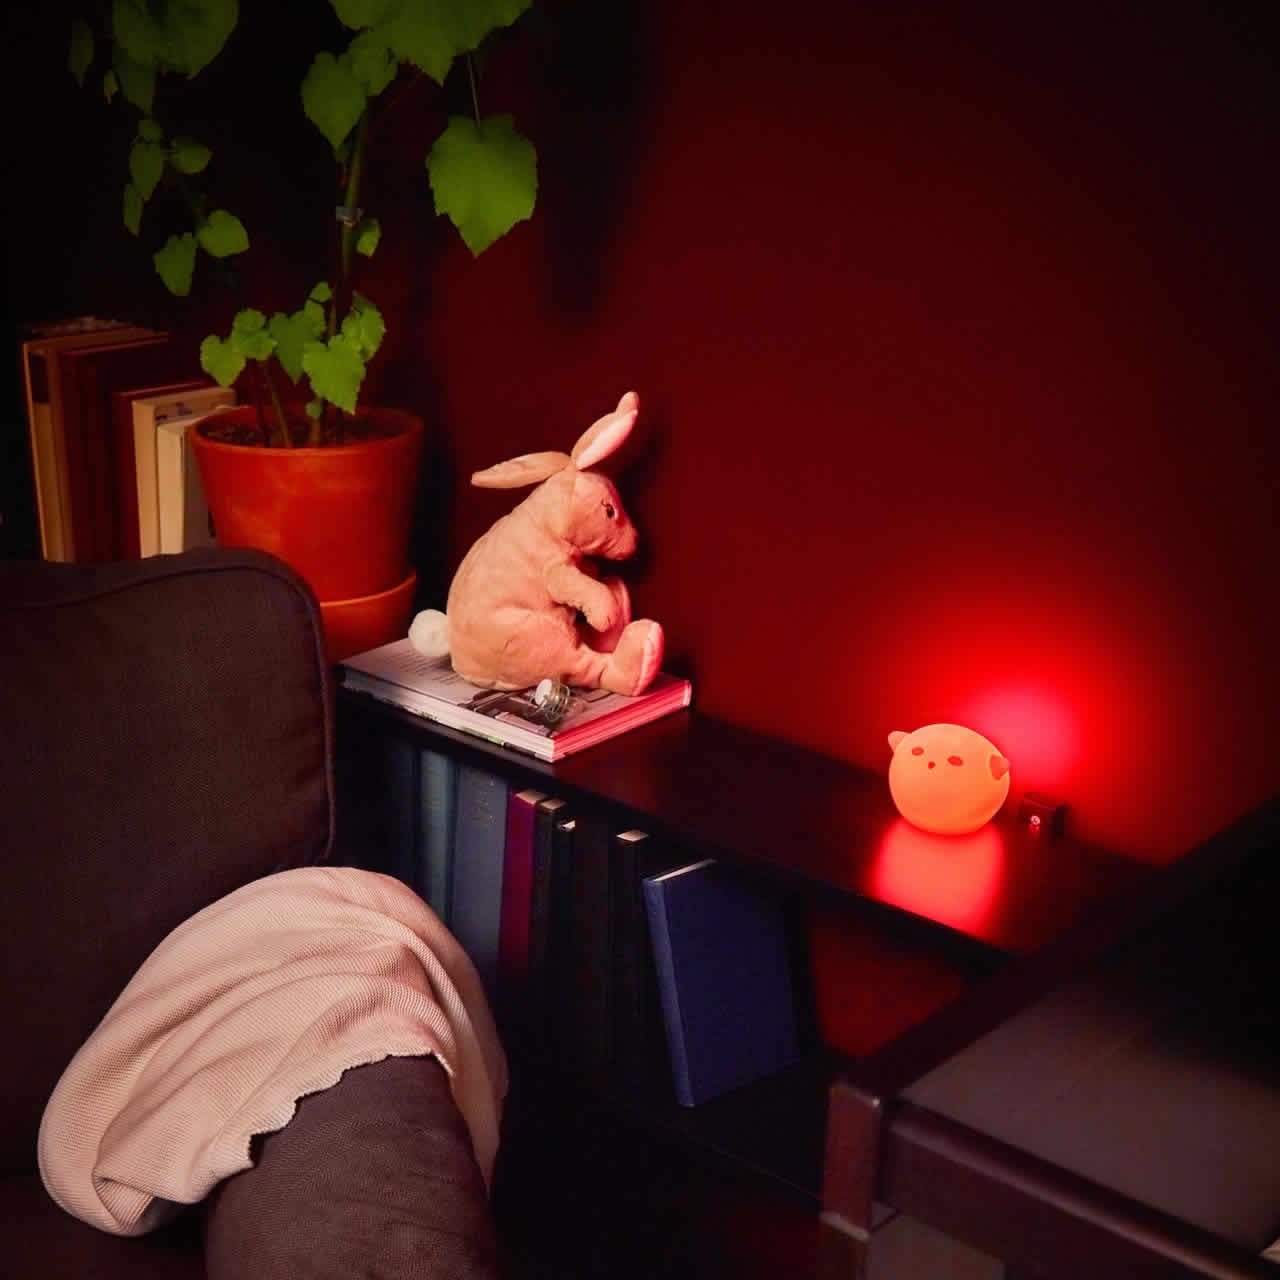 IKEA Ideas - Life in light: Late nights with baby